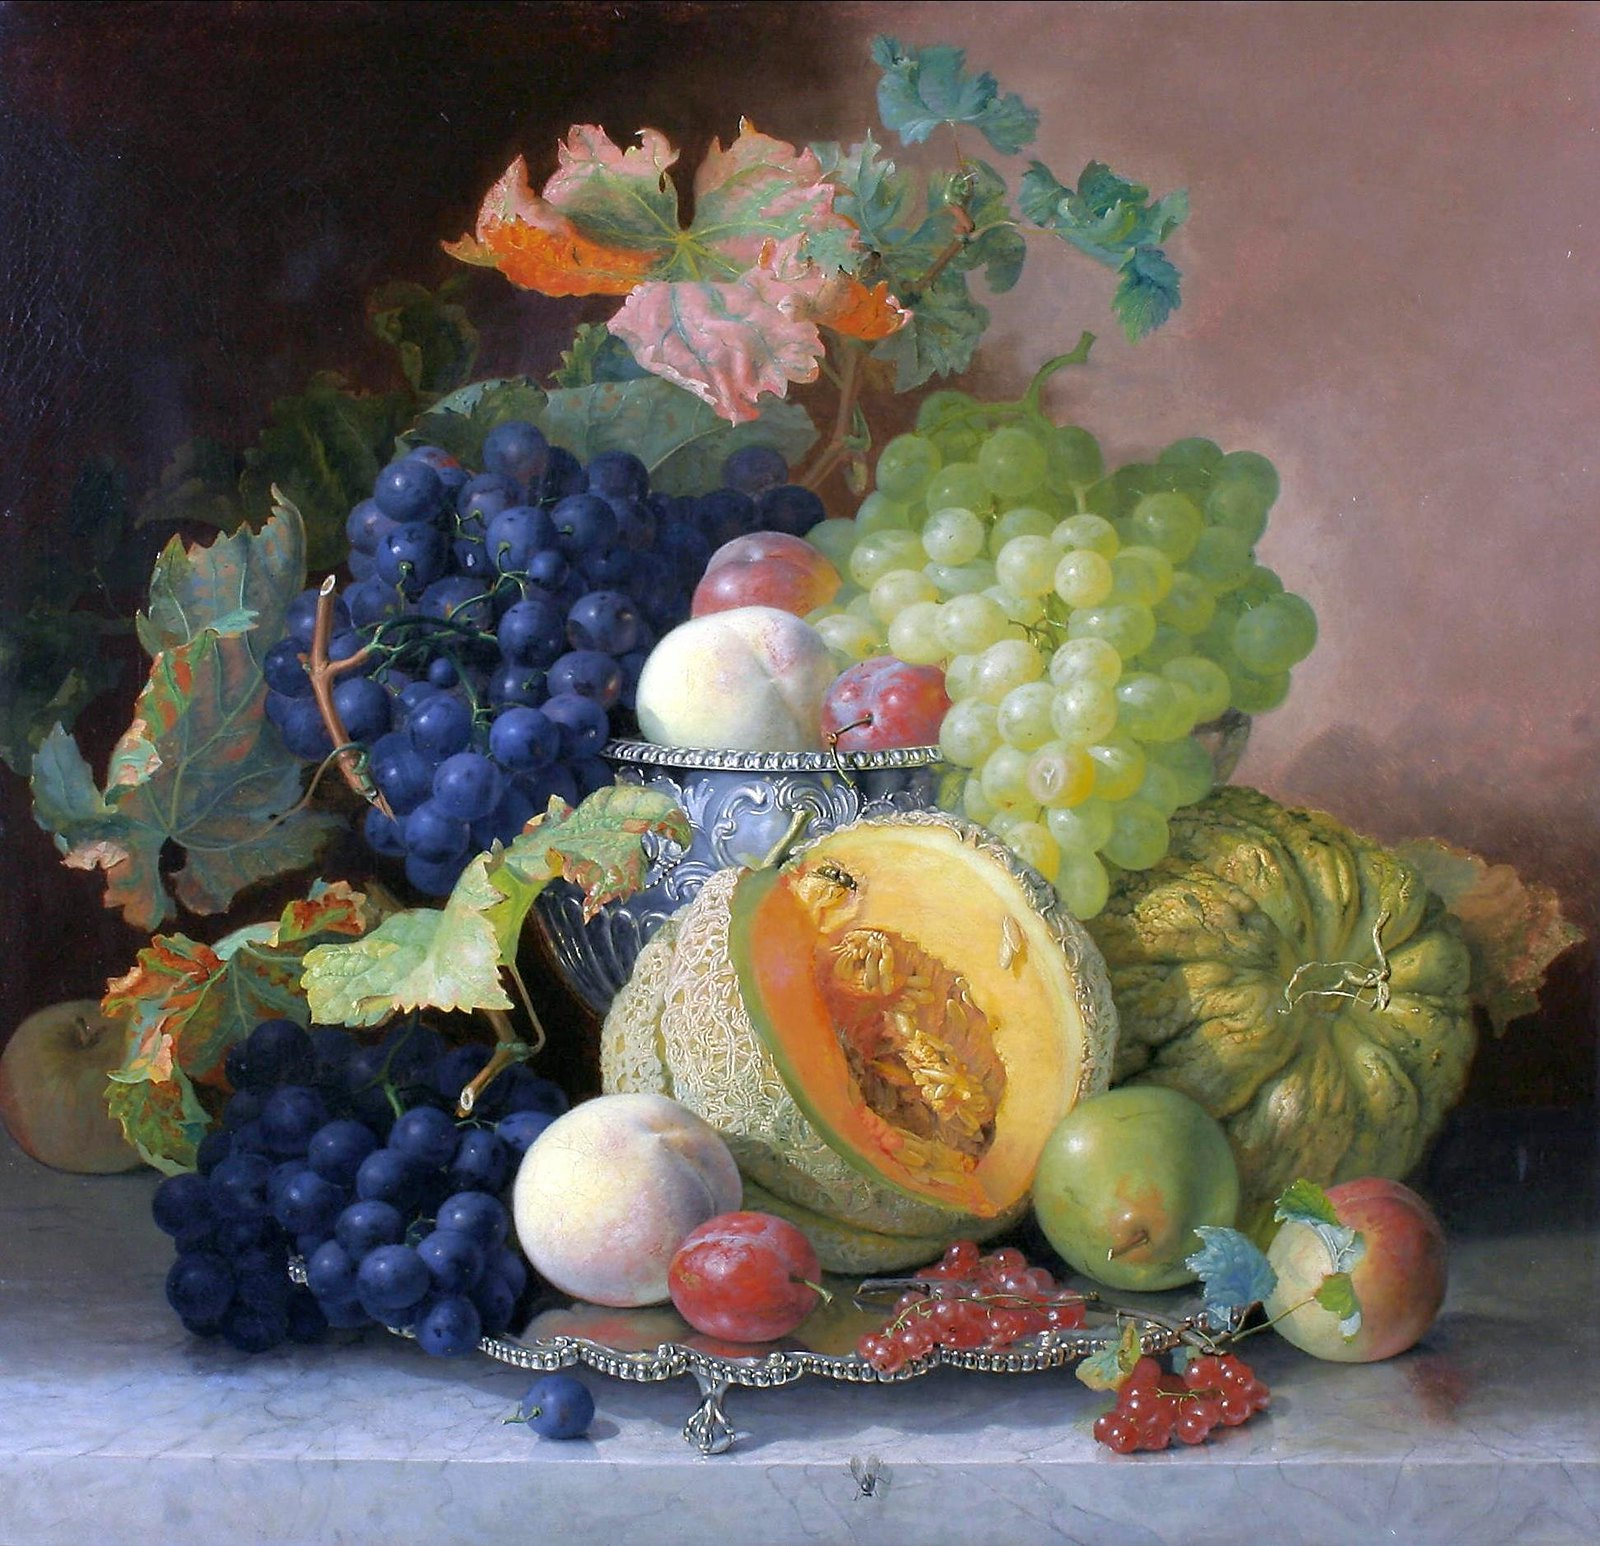 Still Life of Fruit and a Silver Bowl by Eloise Harriet Stannard, 1865